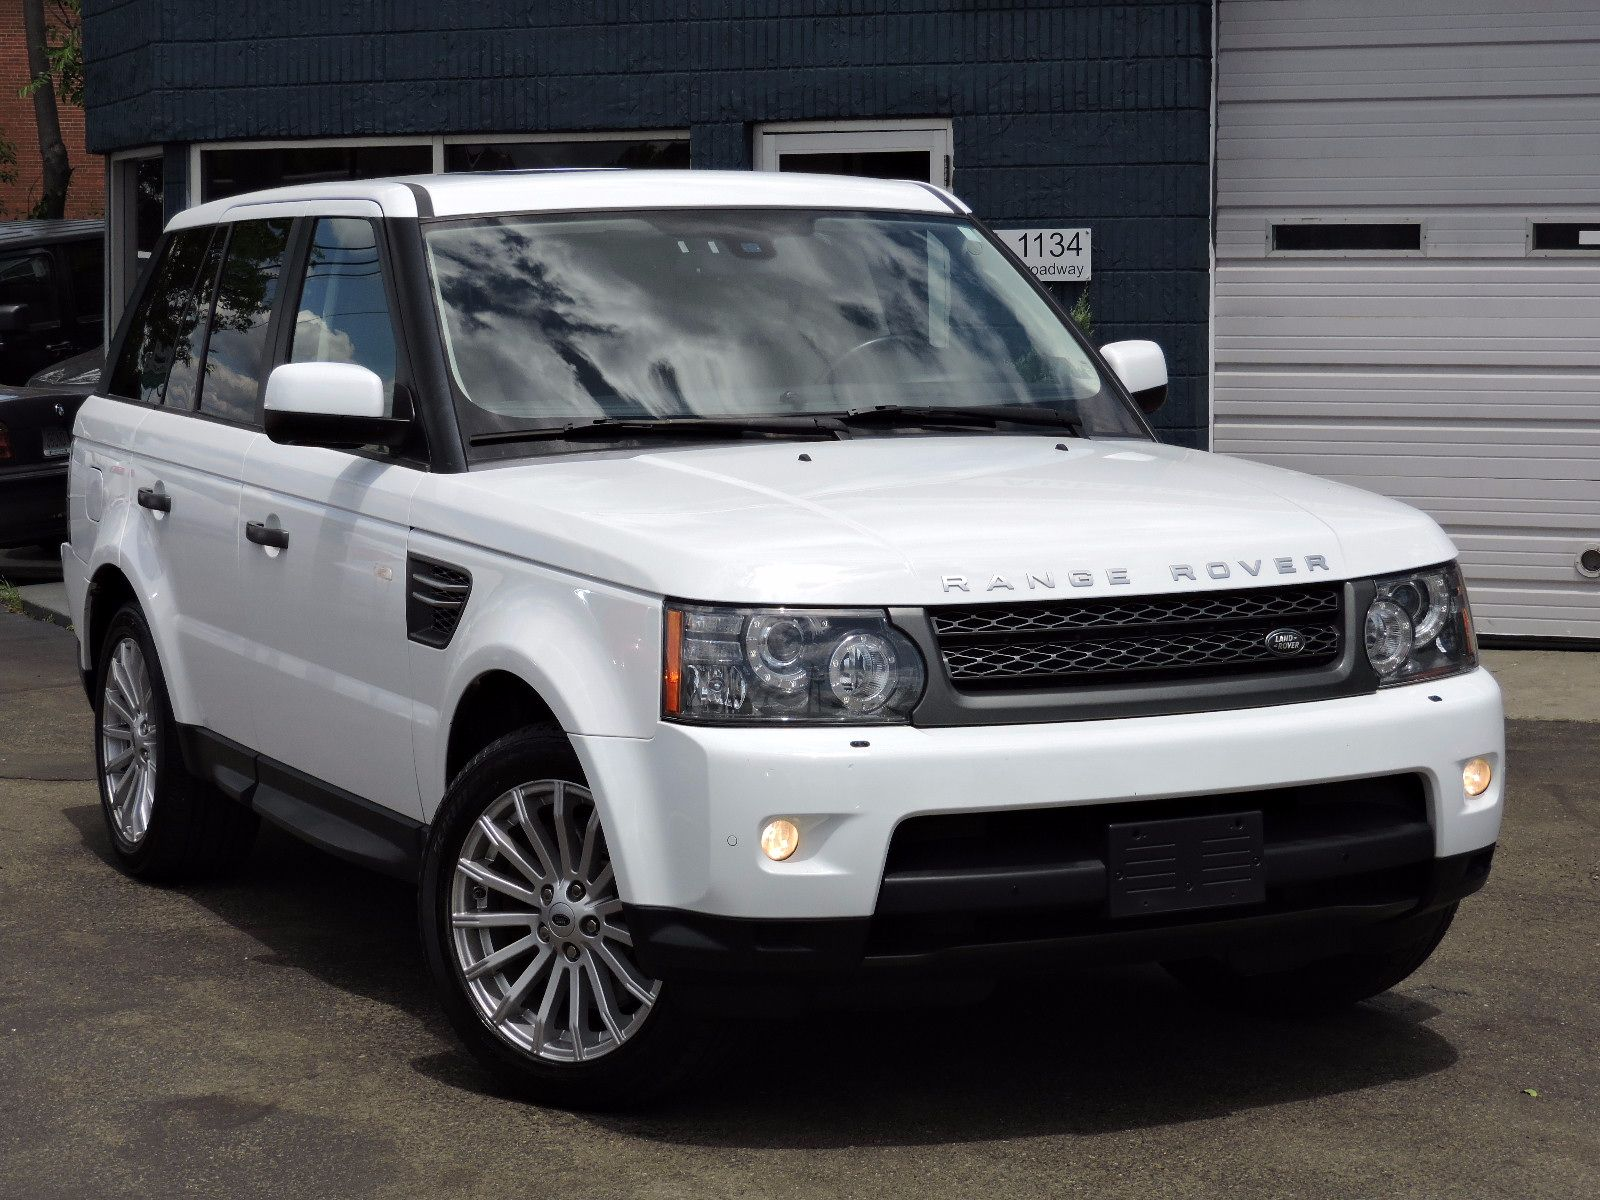 Land Rover Usa - 2018 - 2019 New Car Reviews by girlcodemovement